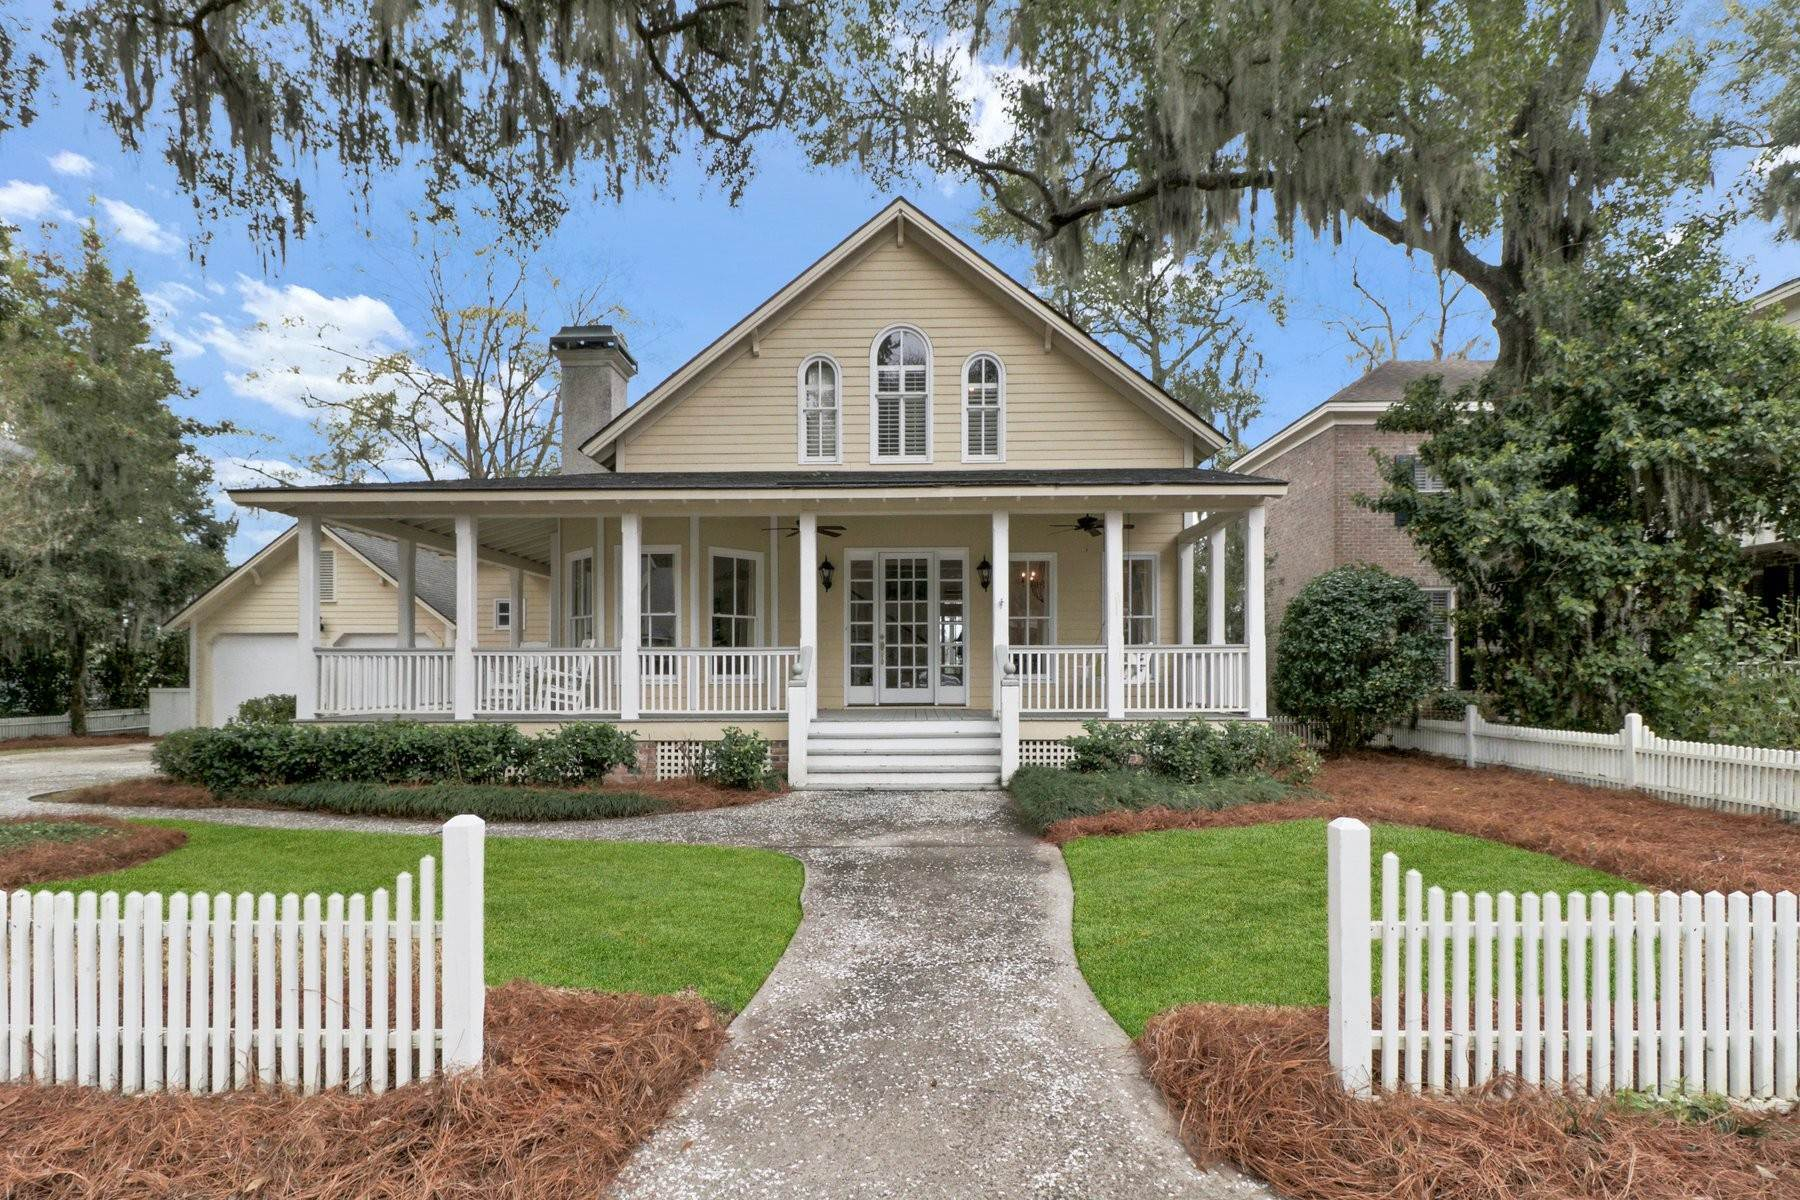 Single Family Homes for Sale at Charming Coastal Home in Emerald Pointe 108 John Wesley Way Savannah, Georgia 31404 United States